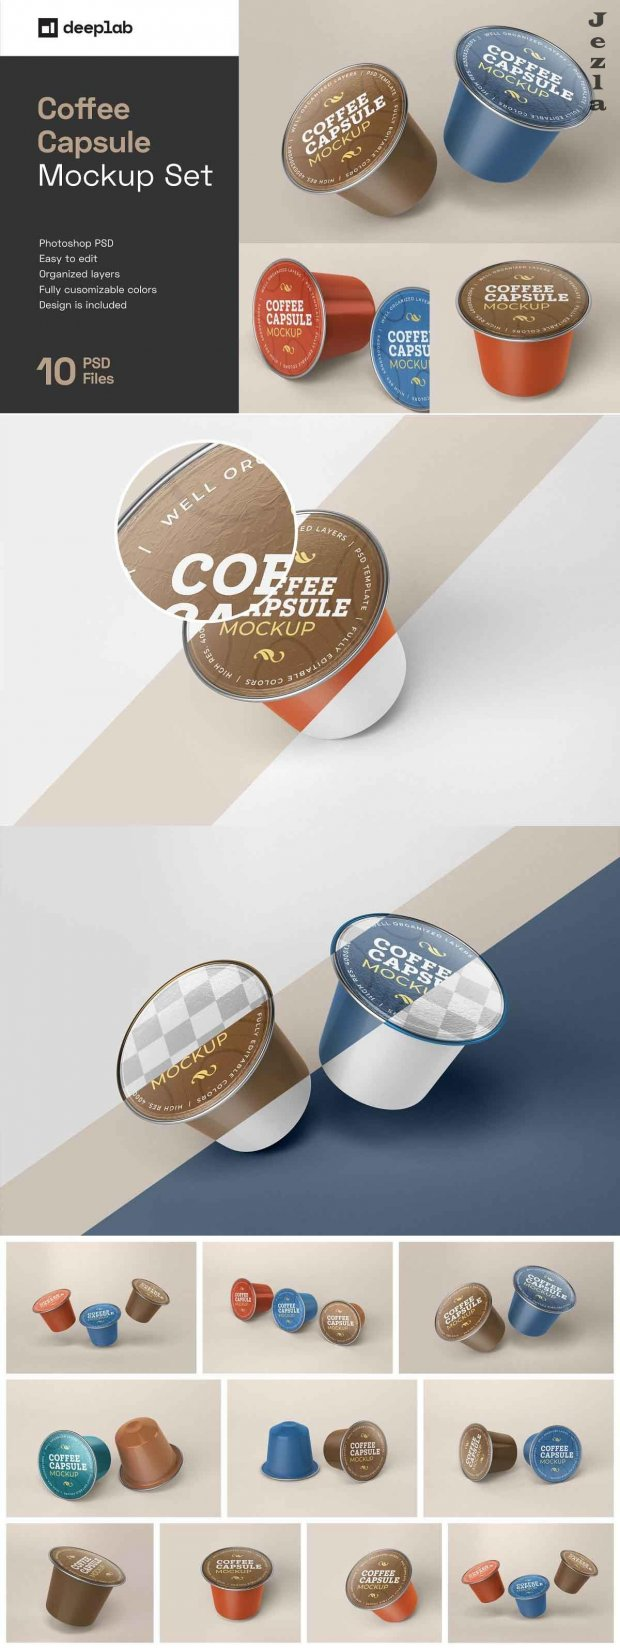 Coffee Capsule Mockup | Packaging 5135762